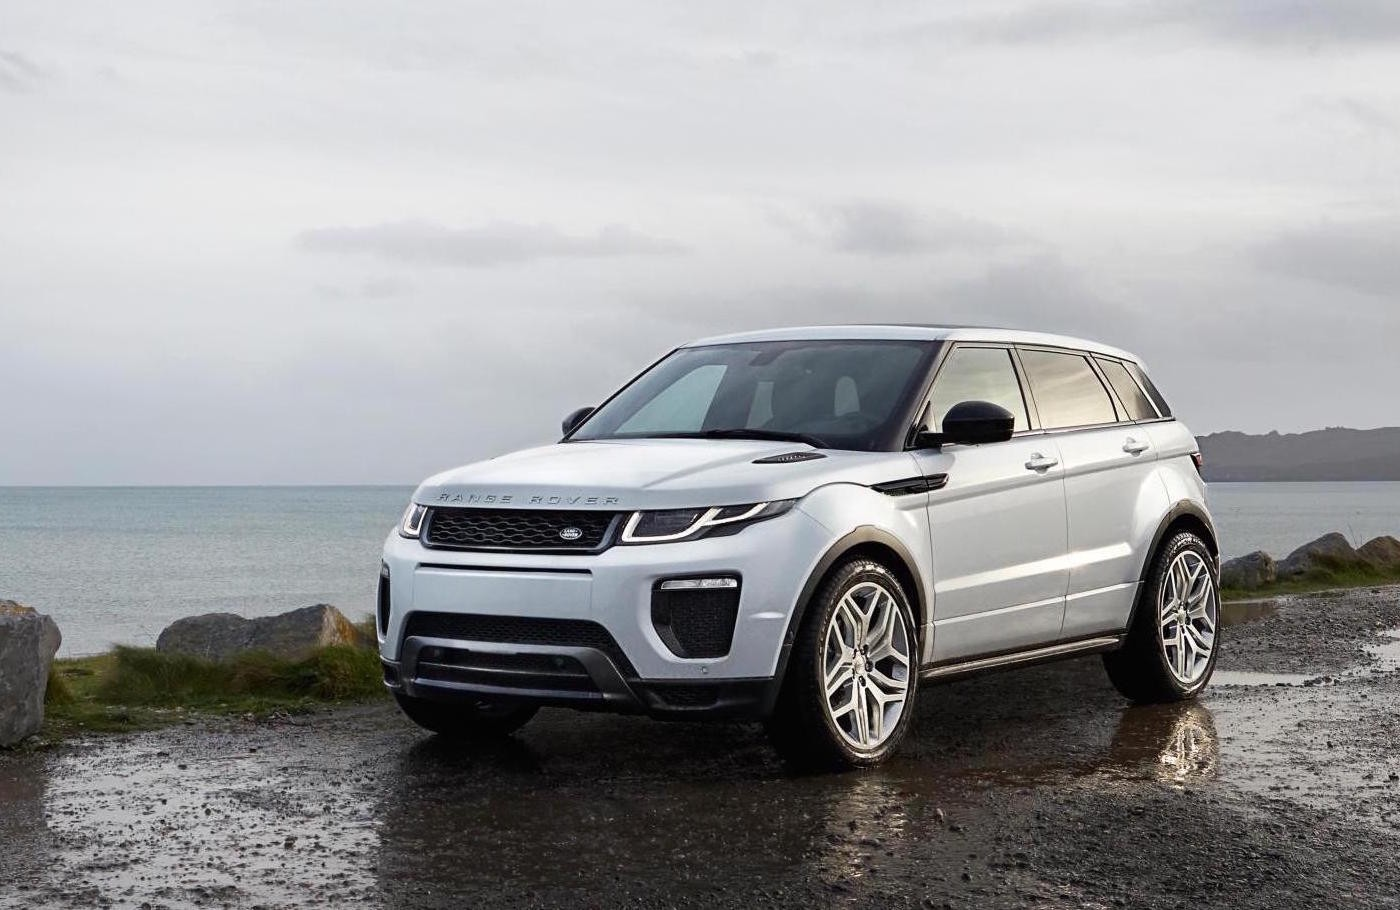 White Range Rover Evoque parked overlooking a lake view.